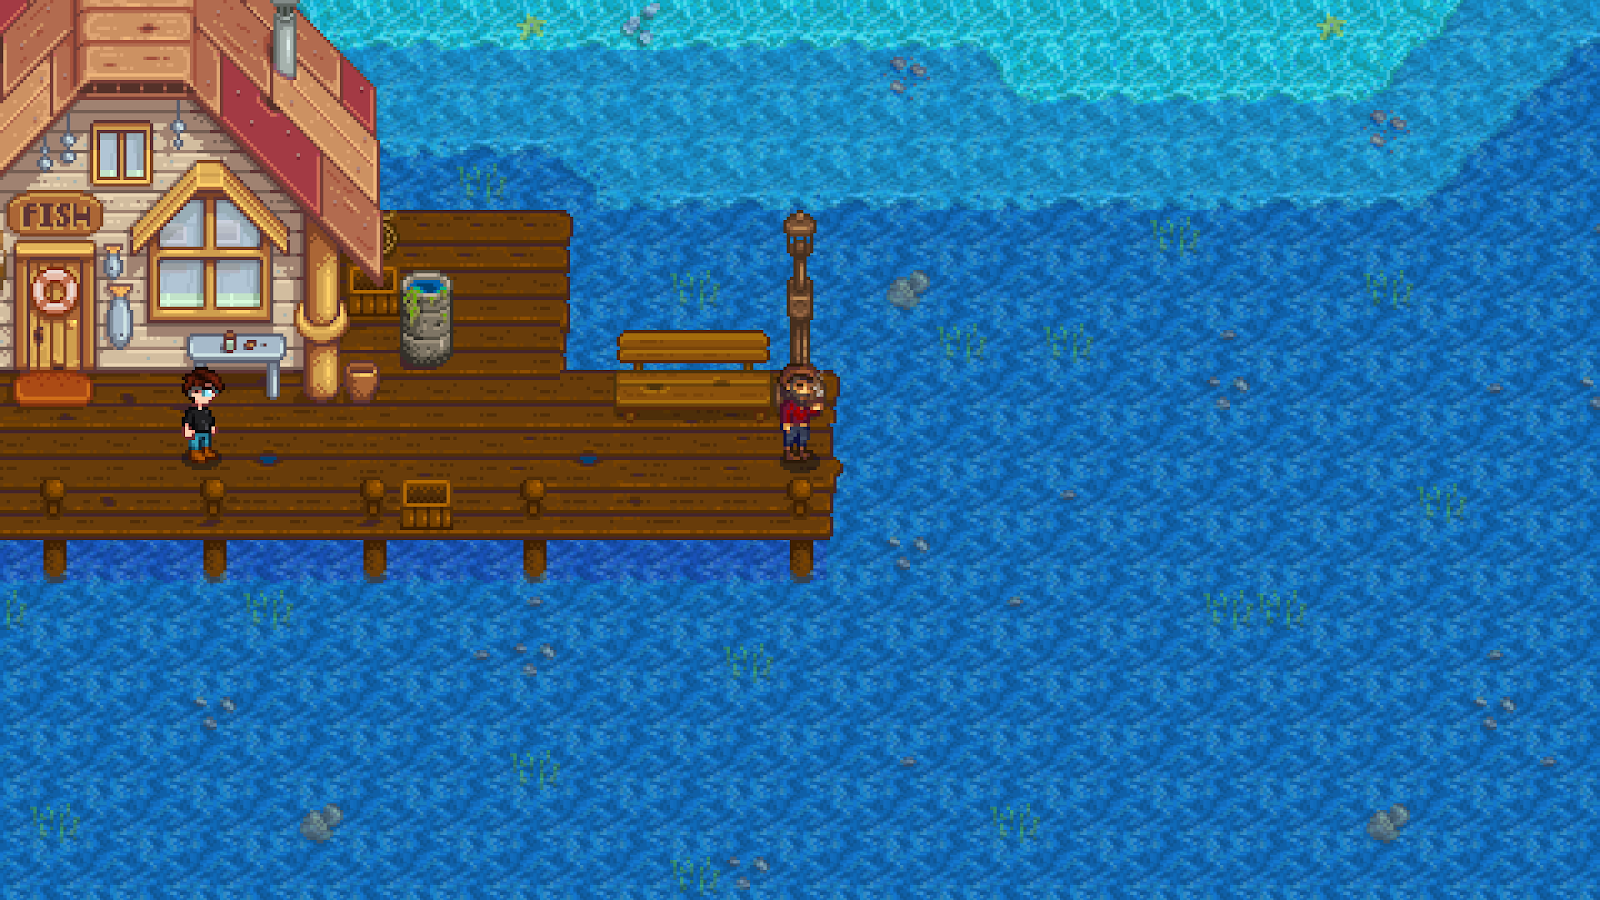 Stardew Valley Fish Guide Usgamer Her name was dotty and she weighed 25lb1oz i hope dotty's offspring has the. stardew valley fish guide usgamer